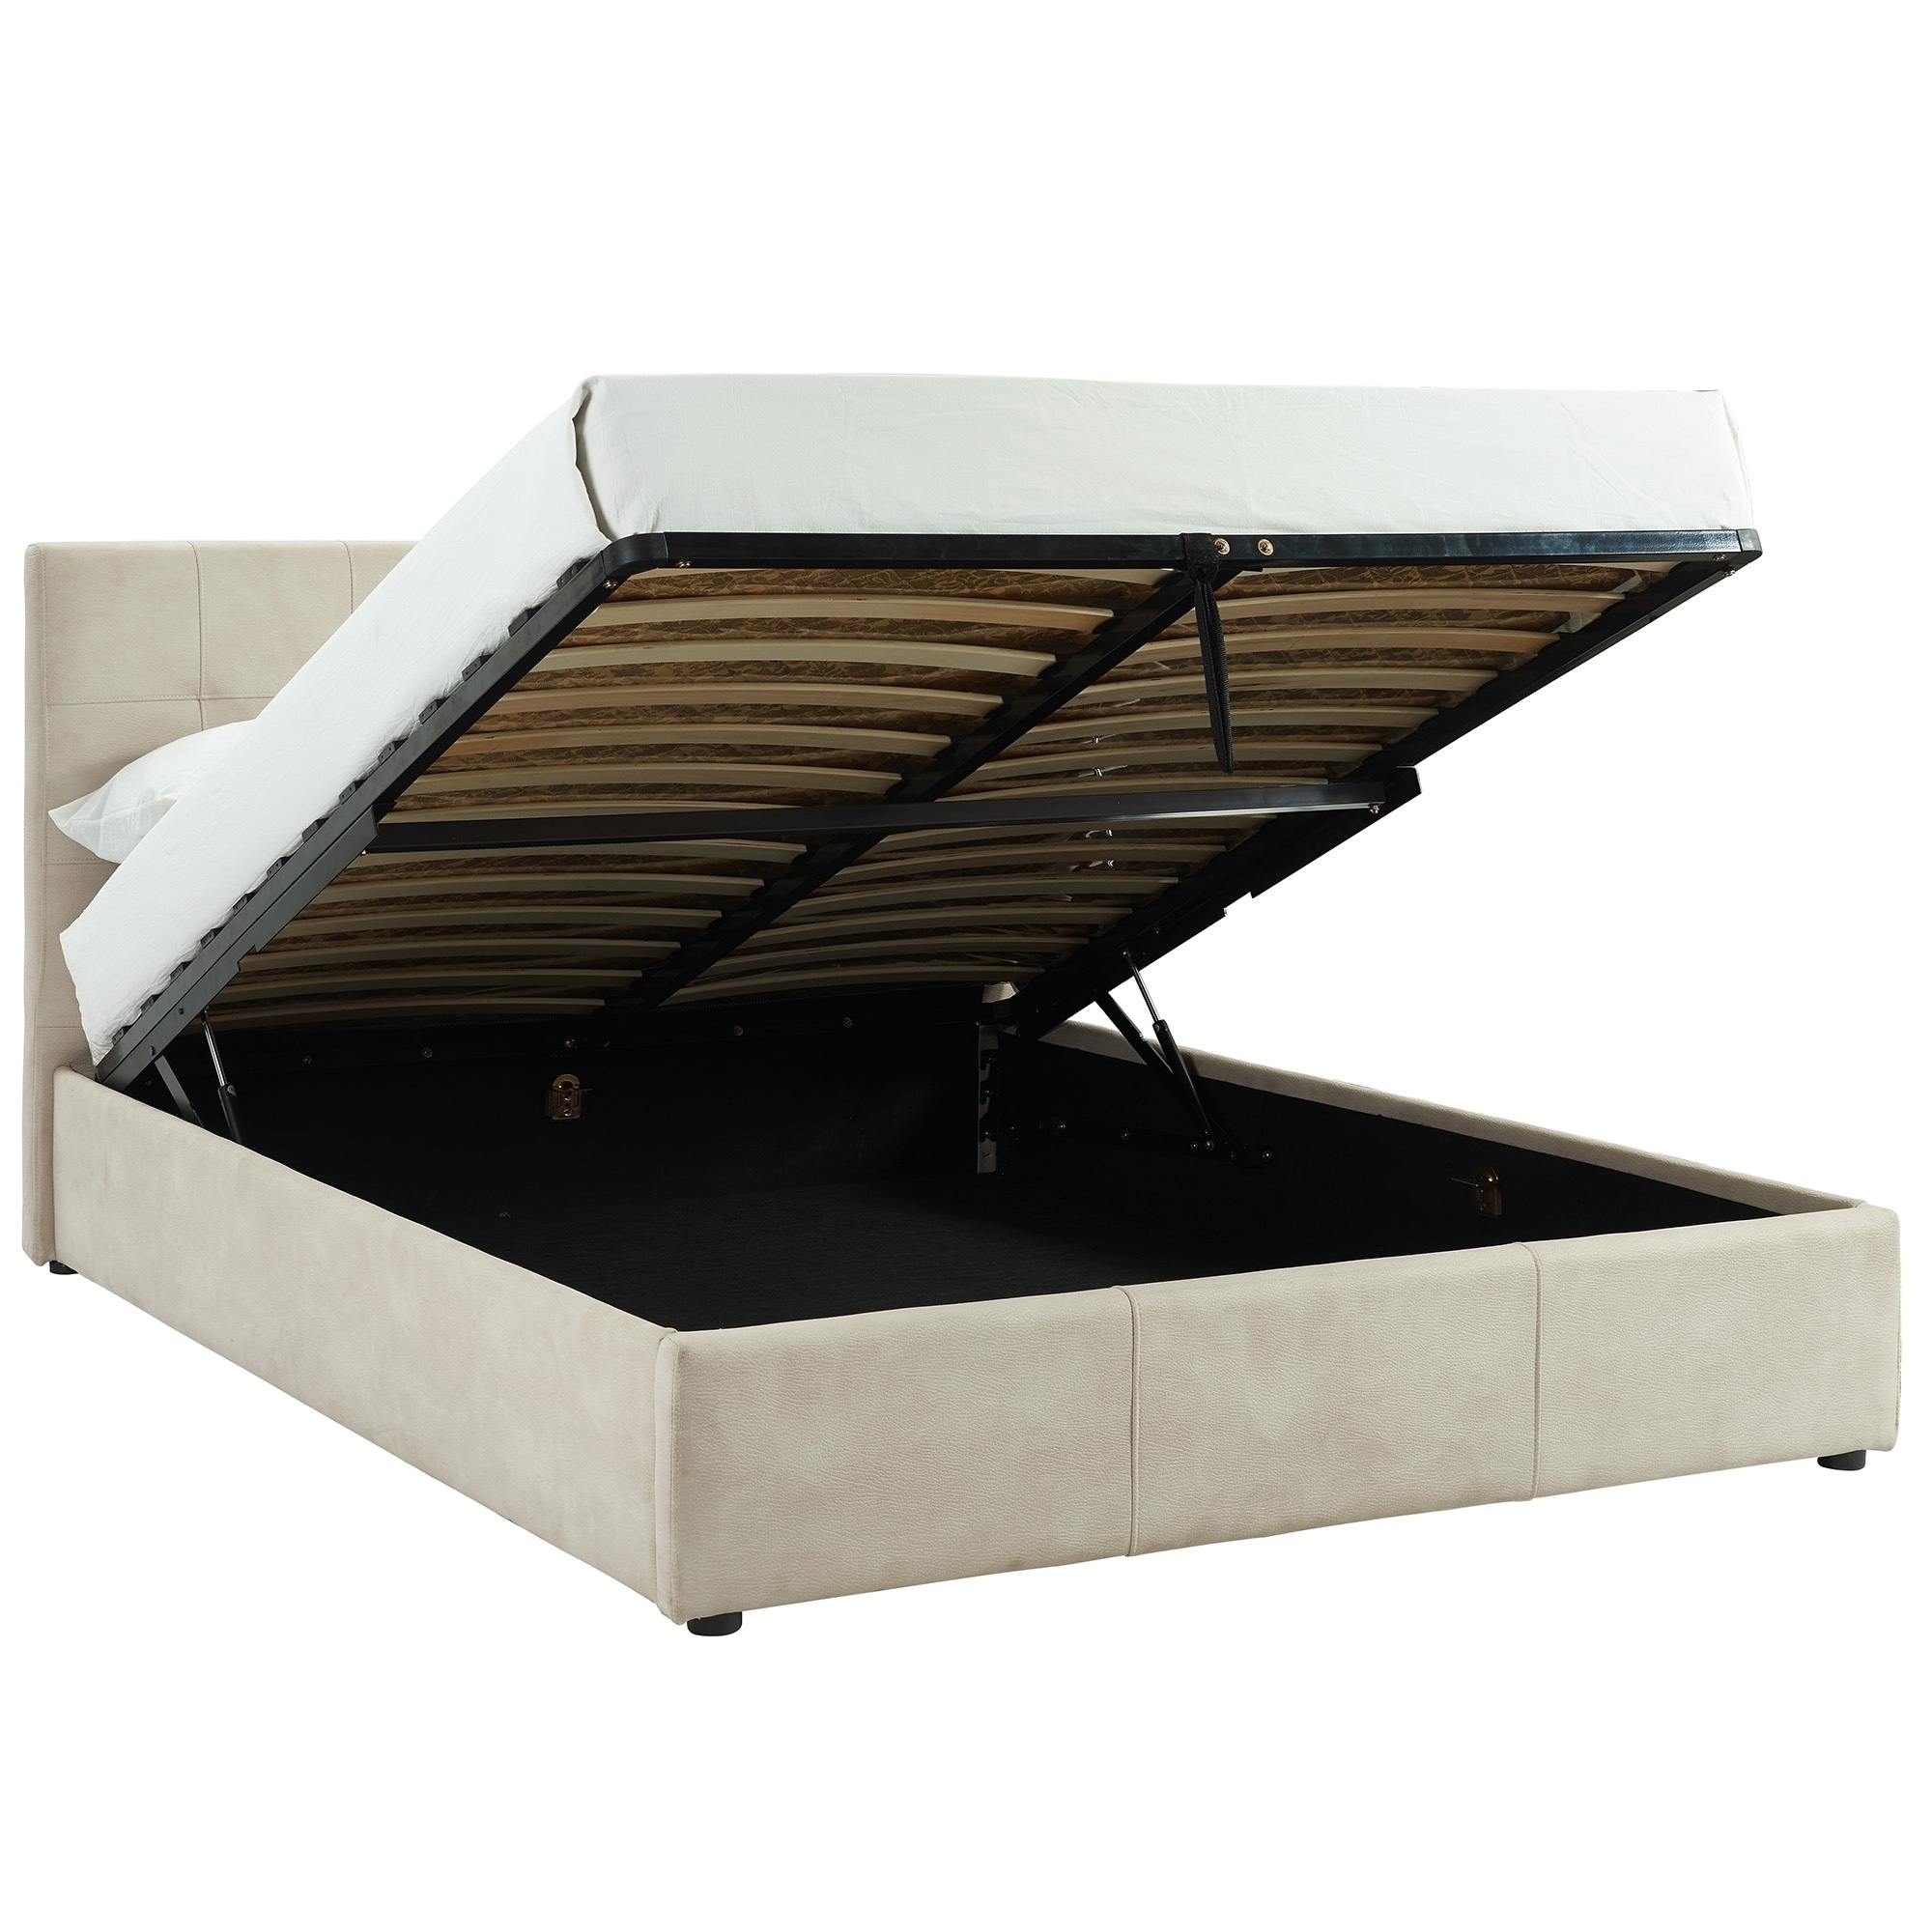 654246fe1e26 Shop Extara-Queen Hydraulic Lift Platform Storage Bed - Free Shipping Today  - Overstock - 22158658